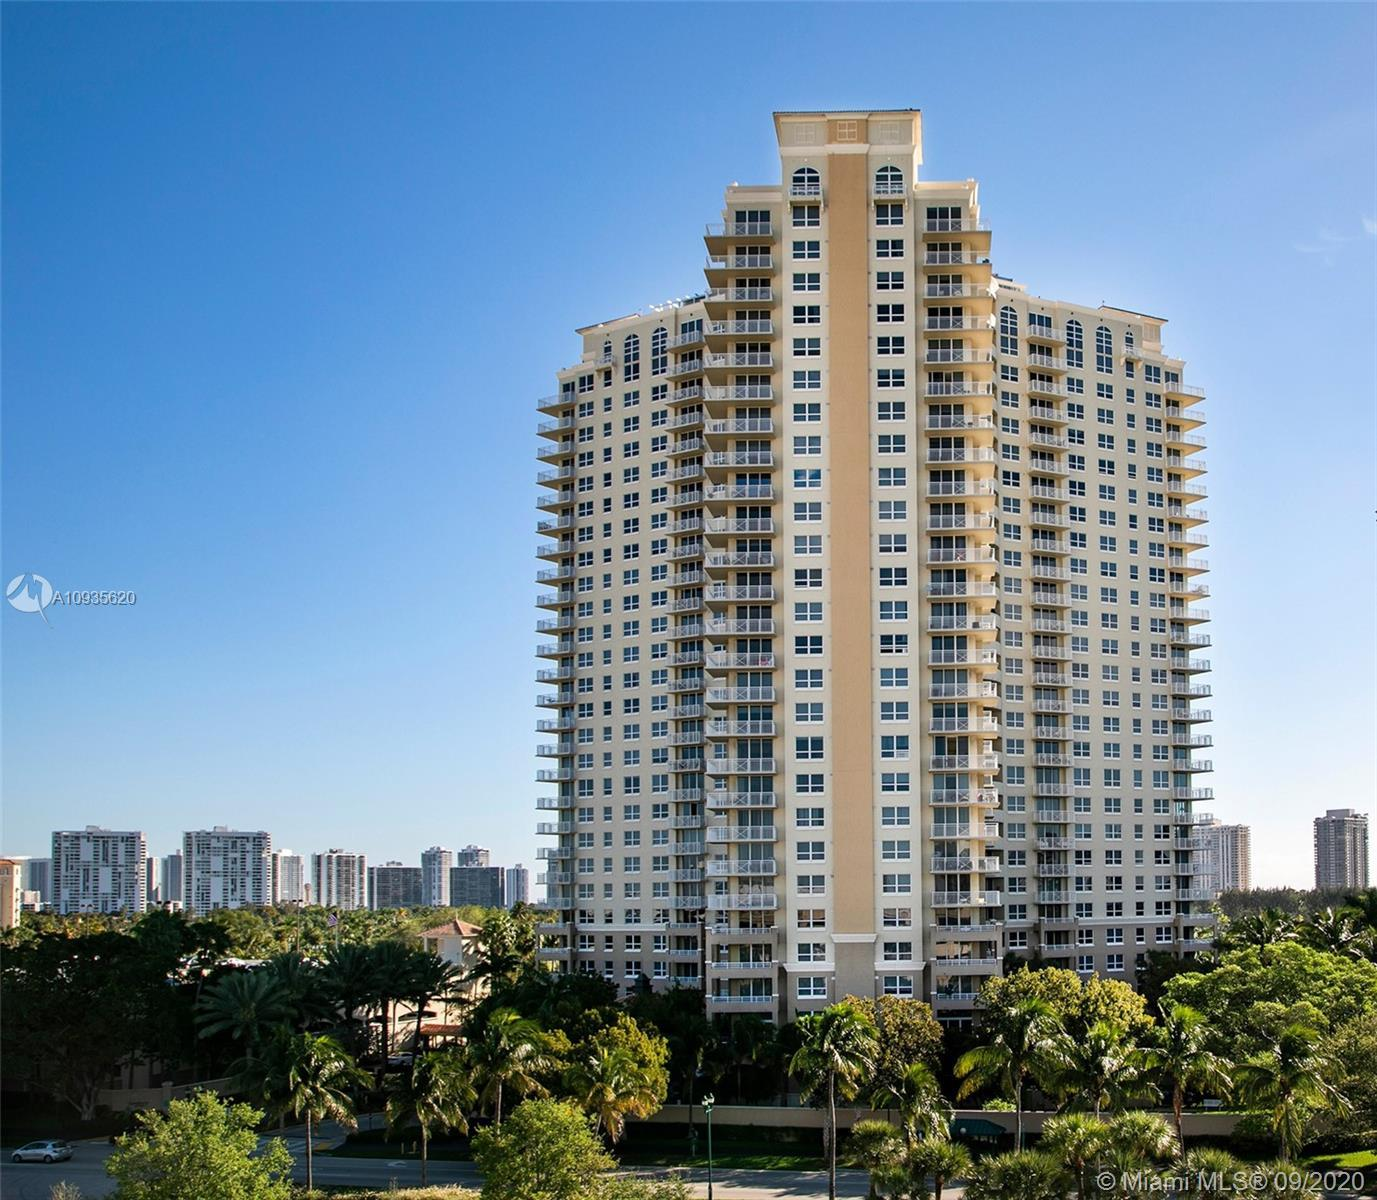 BEST VIEW OF THE BUILDING. AWESOME VIEWS TO GOLF, INTRACOASTAL AND OCEAN. THIS IS A 2-BEDROOM AND 2-